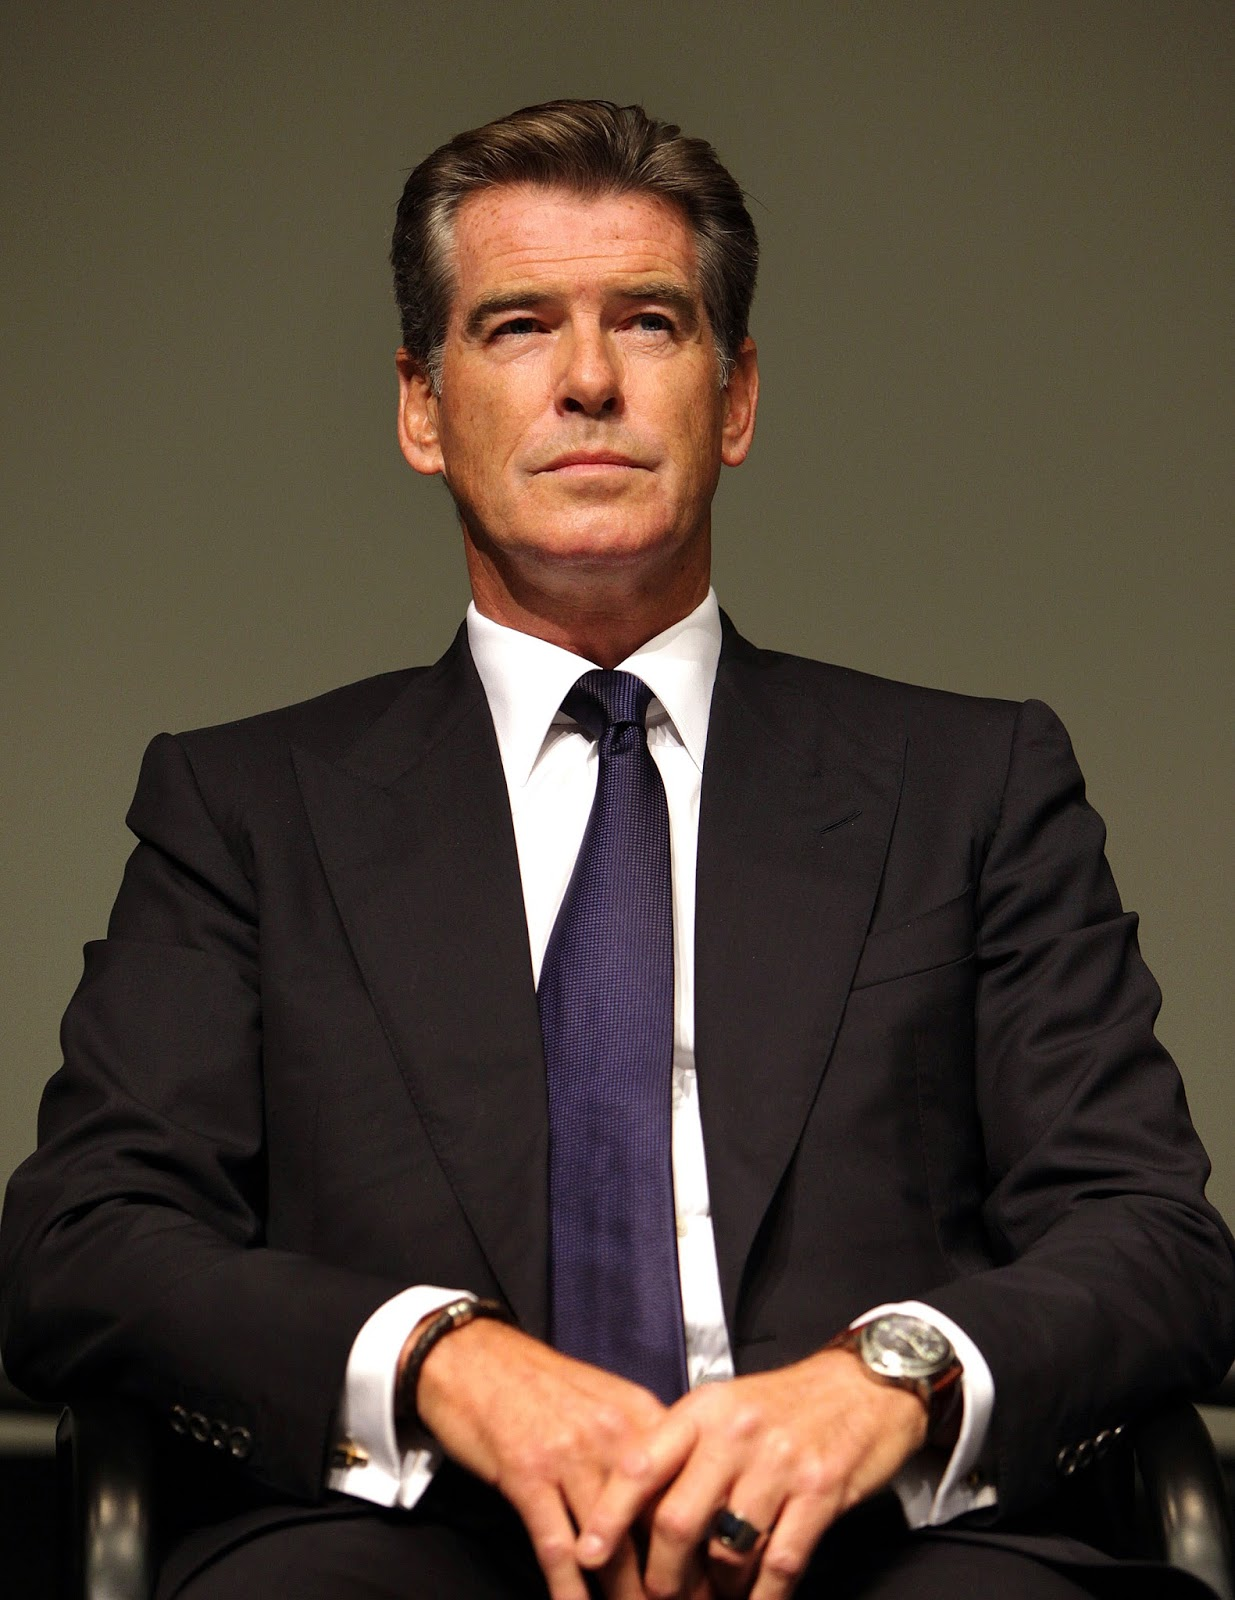 Pierce brosnan club james bond france for Actor watches